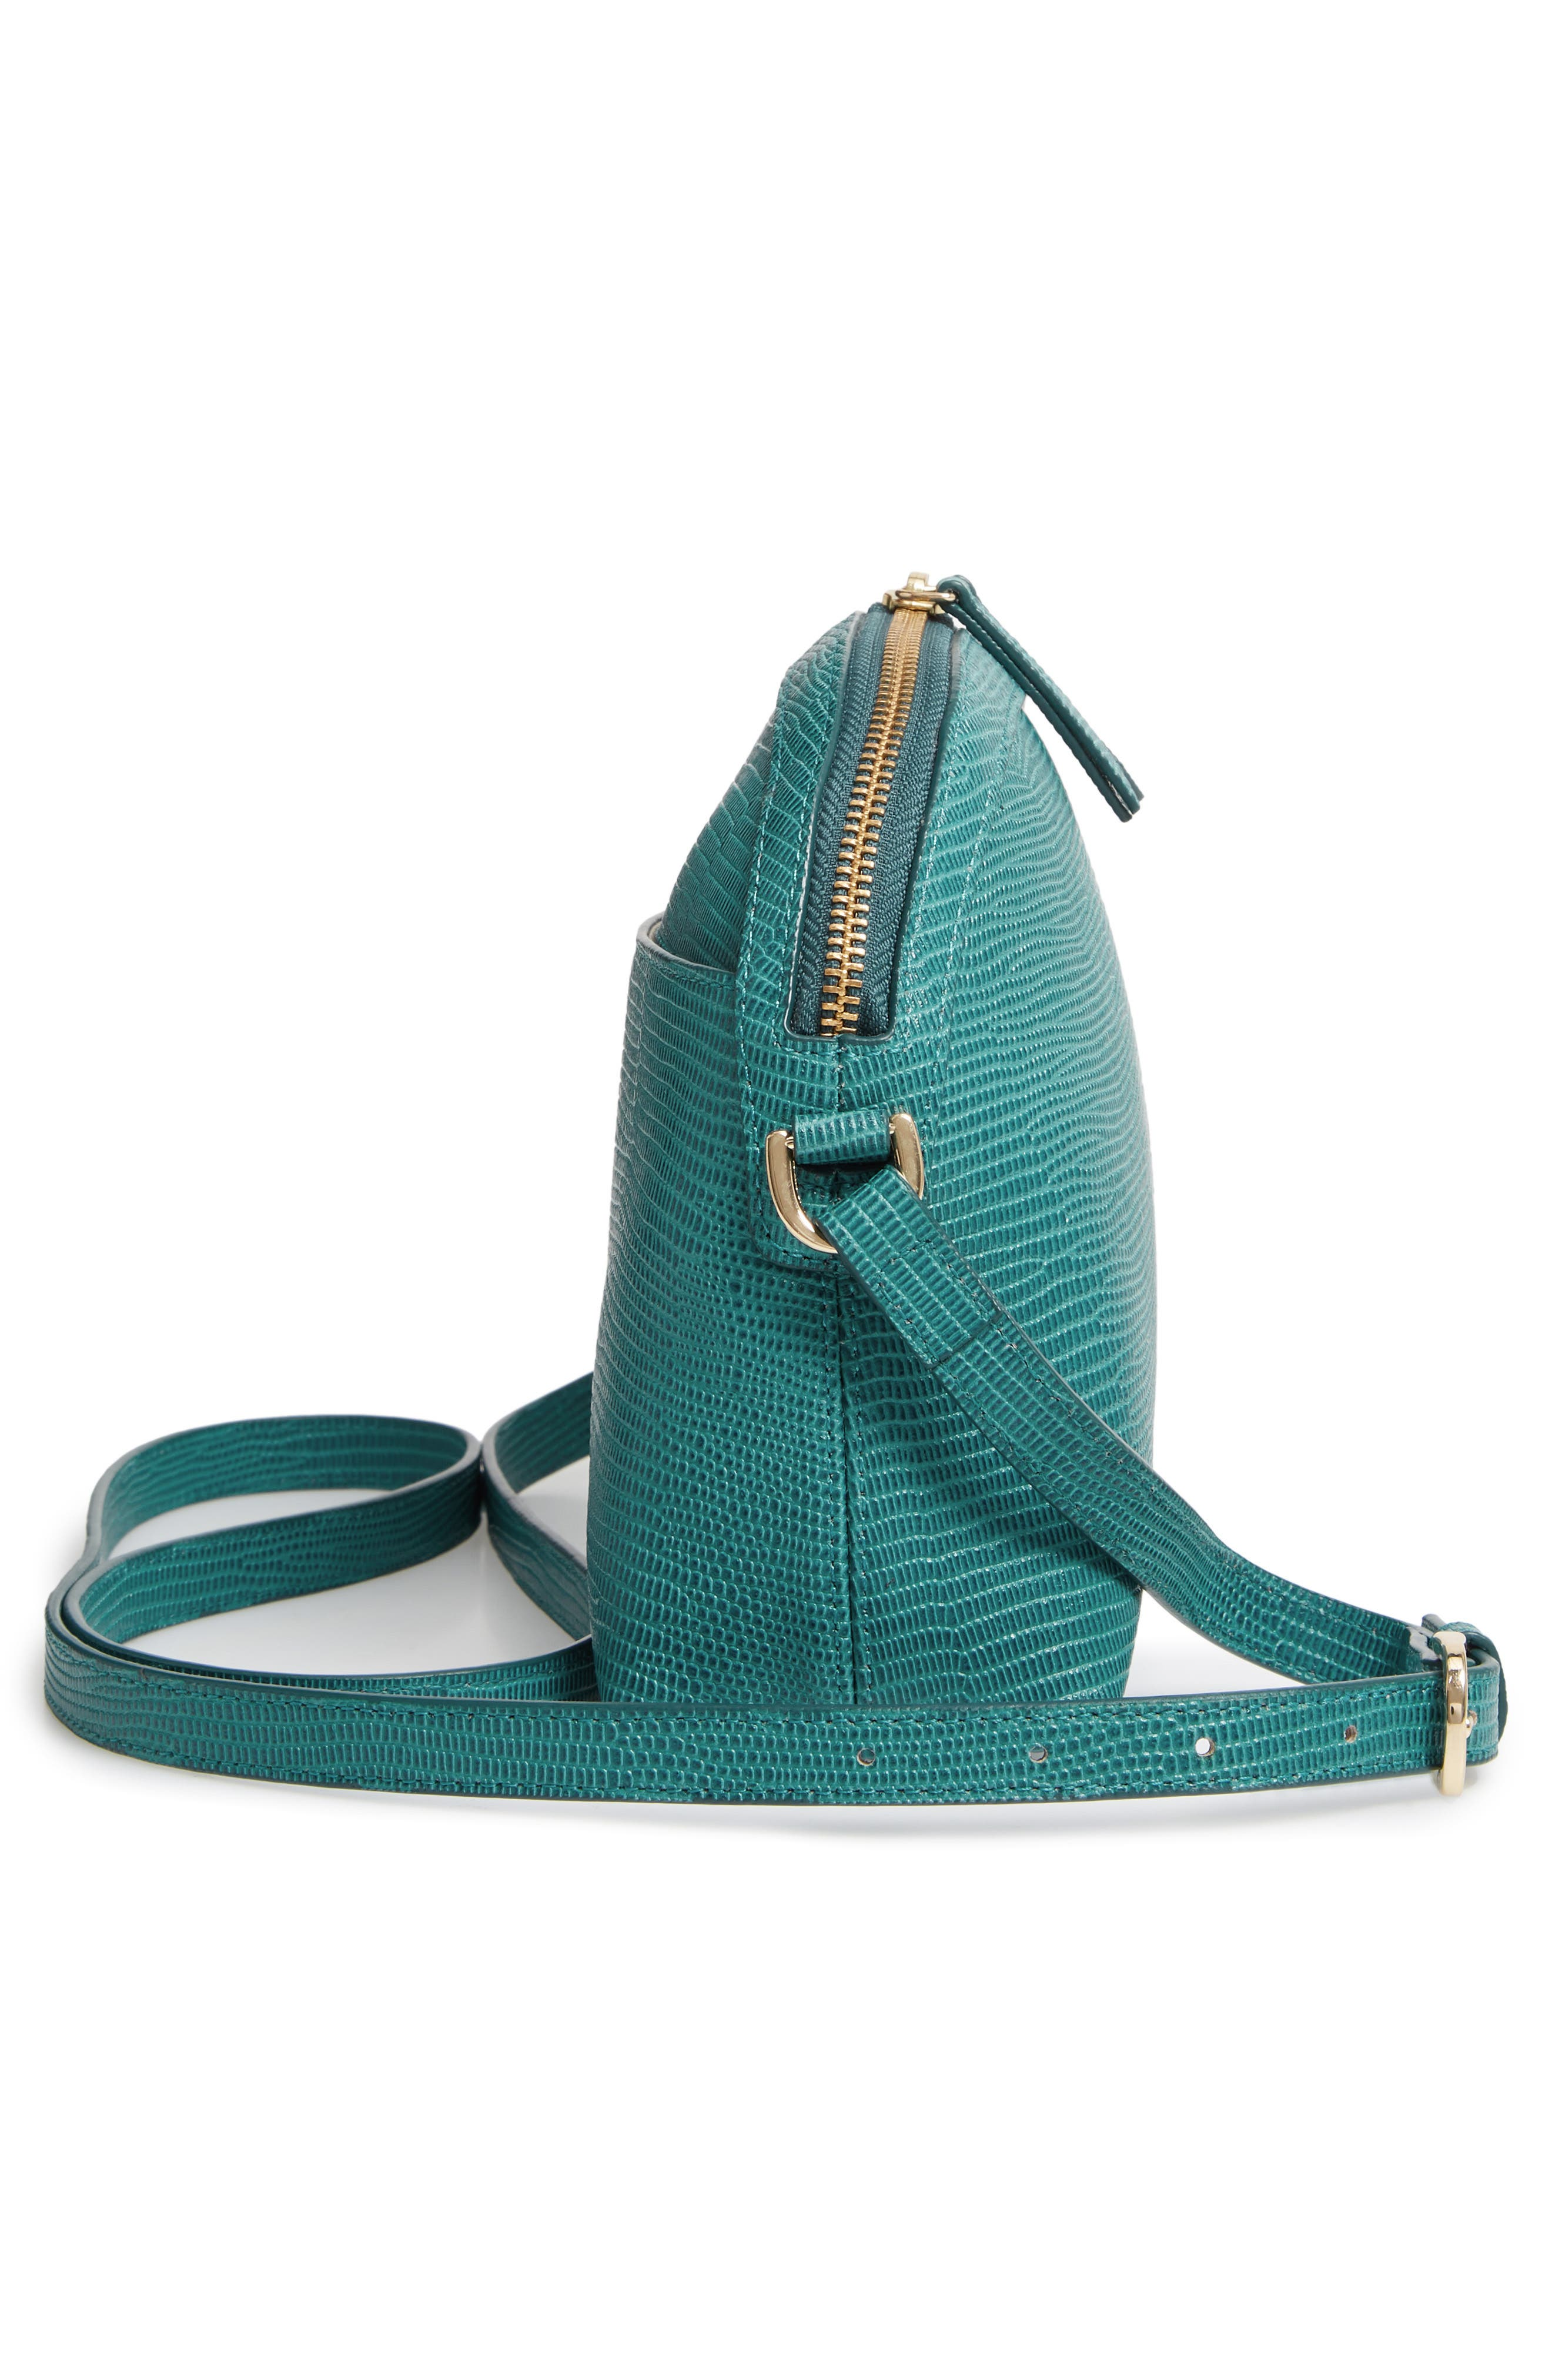 Isobel Half Moon Leather Crossbody Bag,                             Alternate thumbnail 5, color,                             TEAL HARBOR